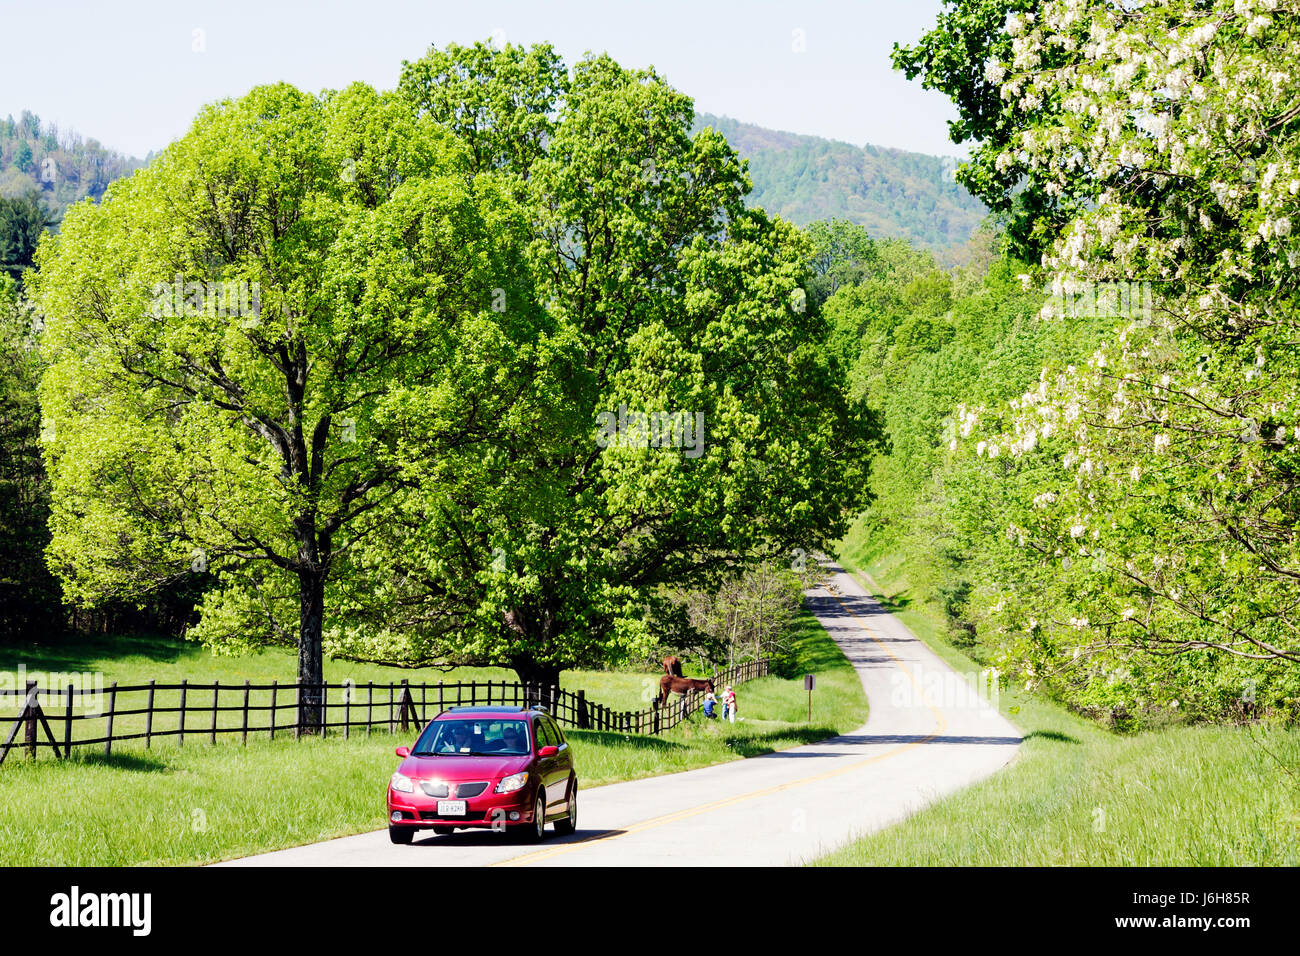 Virginia Roanoke Blue Ridge Parkway Appalachian Mountains car vehicle pasture trees - Stock Image